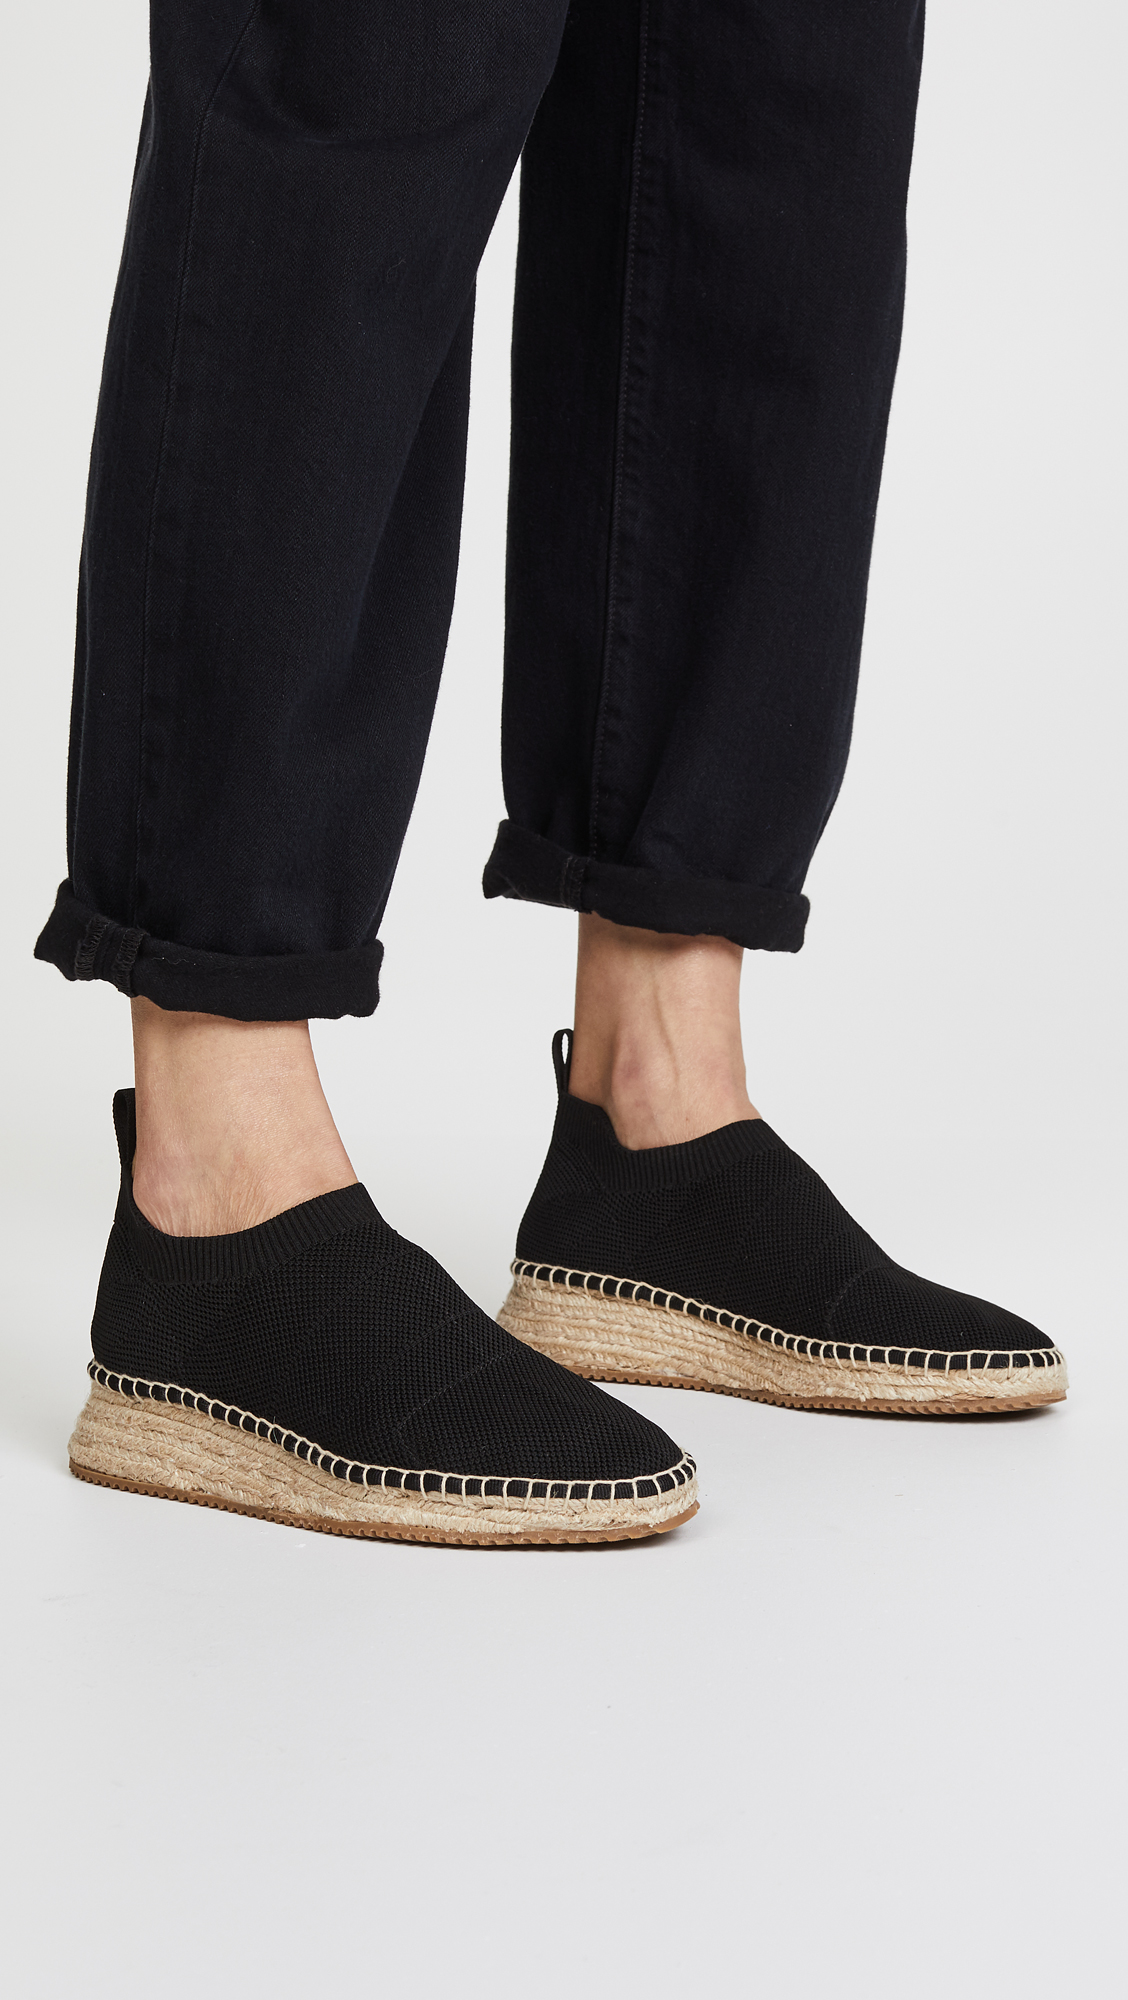 discount 100% guaranteed cheap buy Alexander Wang Dylan low knit espadrilles outlet wide range of sale under $60 great deals cheap price iCBH3N5As